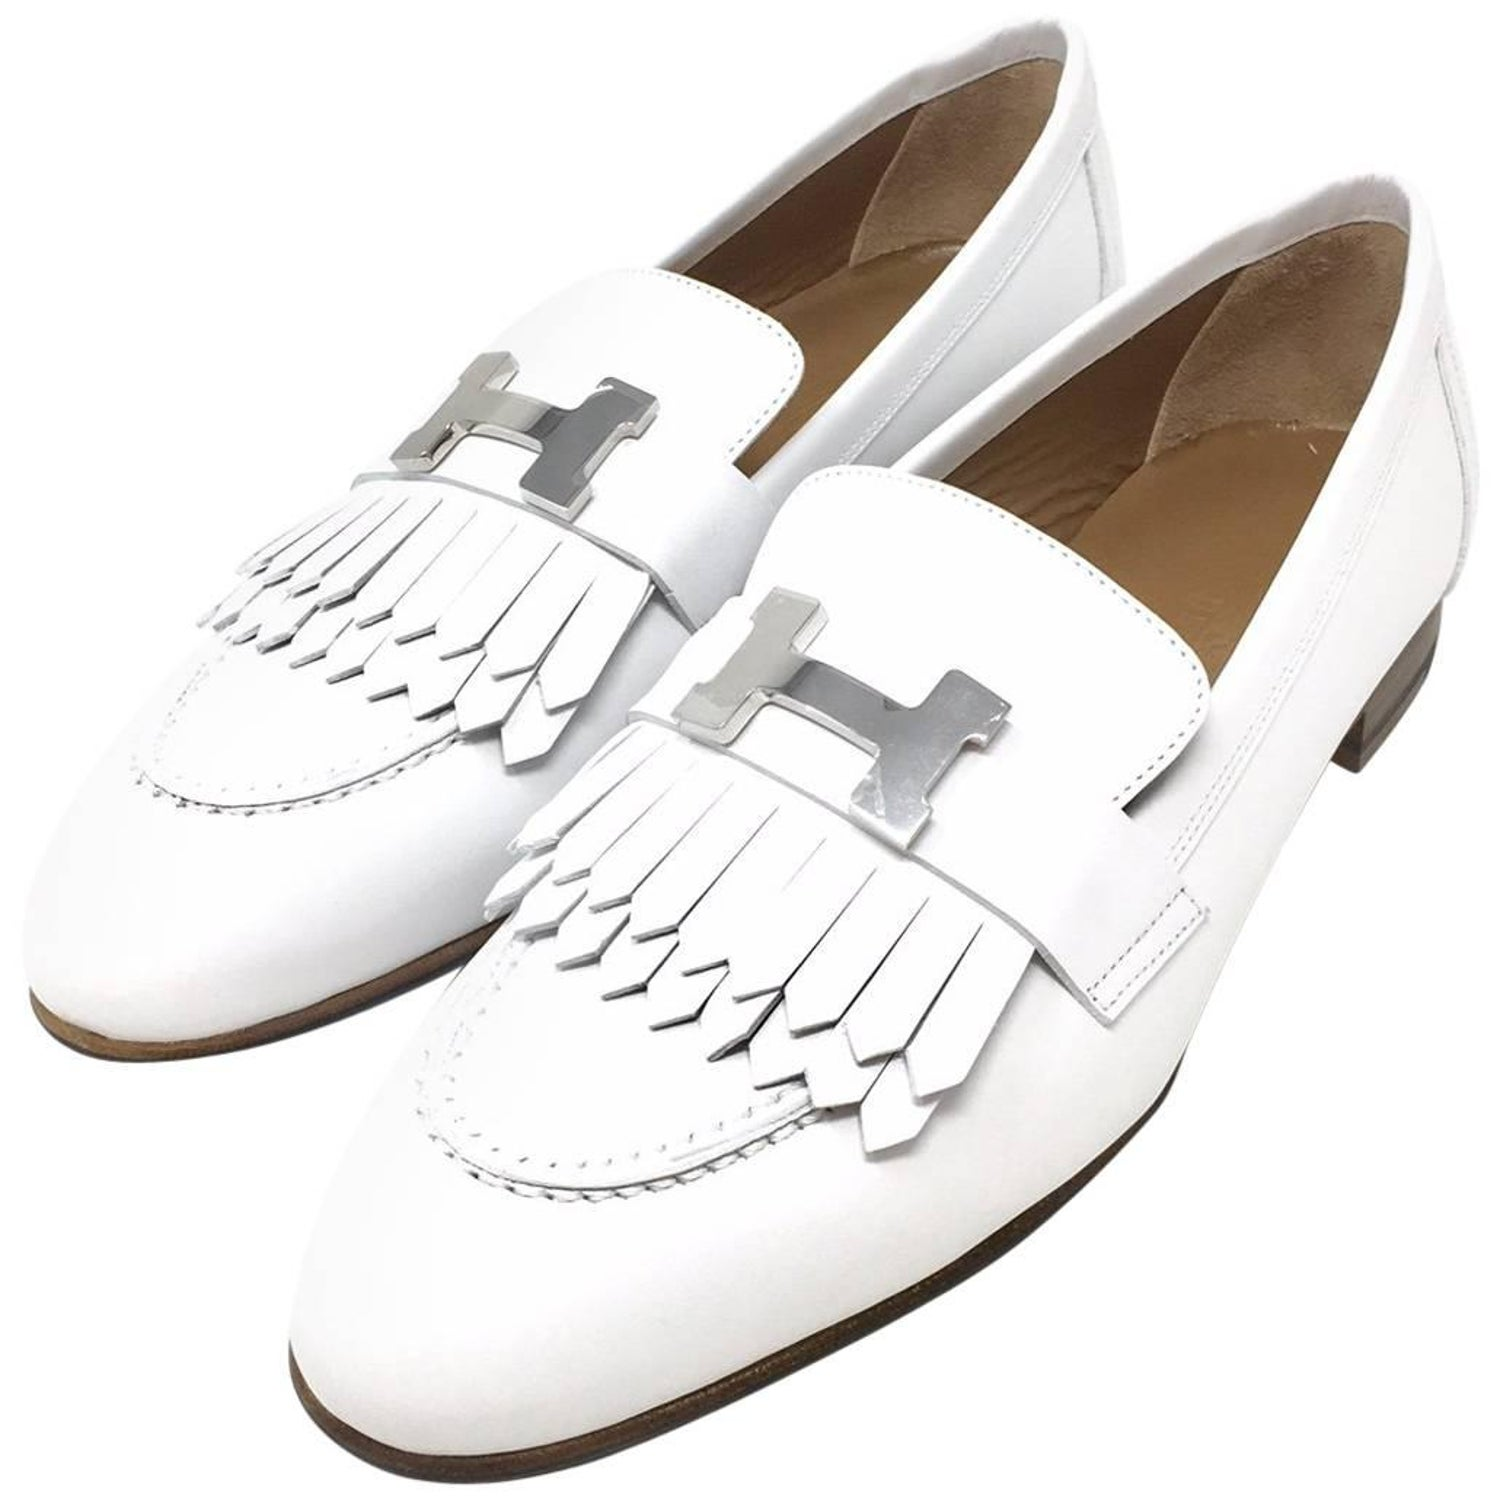 1038c8a7665 Hermes Paris Royal Loafer Shoes Calfskin Colour White Palladium-Plated H  Buckle at 1stdibs